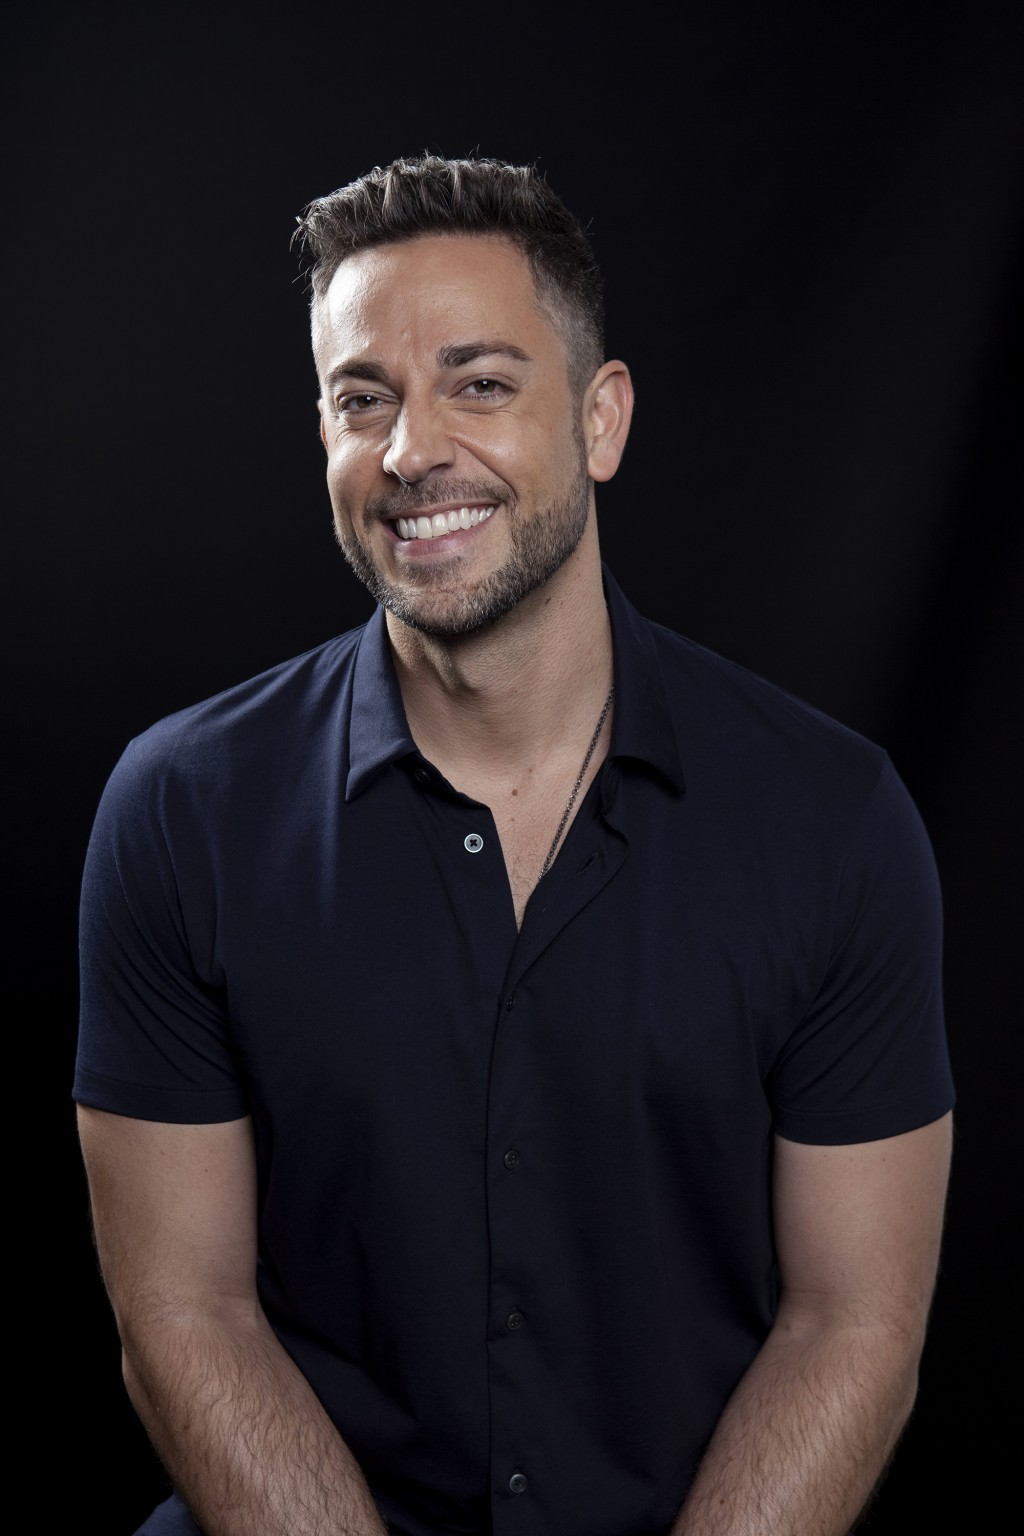 Zachary Levi poses for a portrait in Santa Monica, Calif., Thursday, June 13, 2019. (Photo by Rebecca Cabage/Invision/AP)